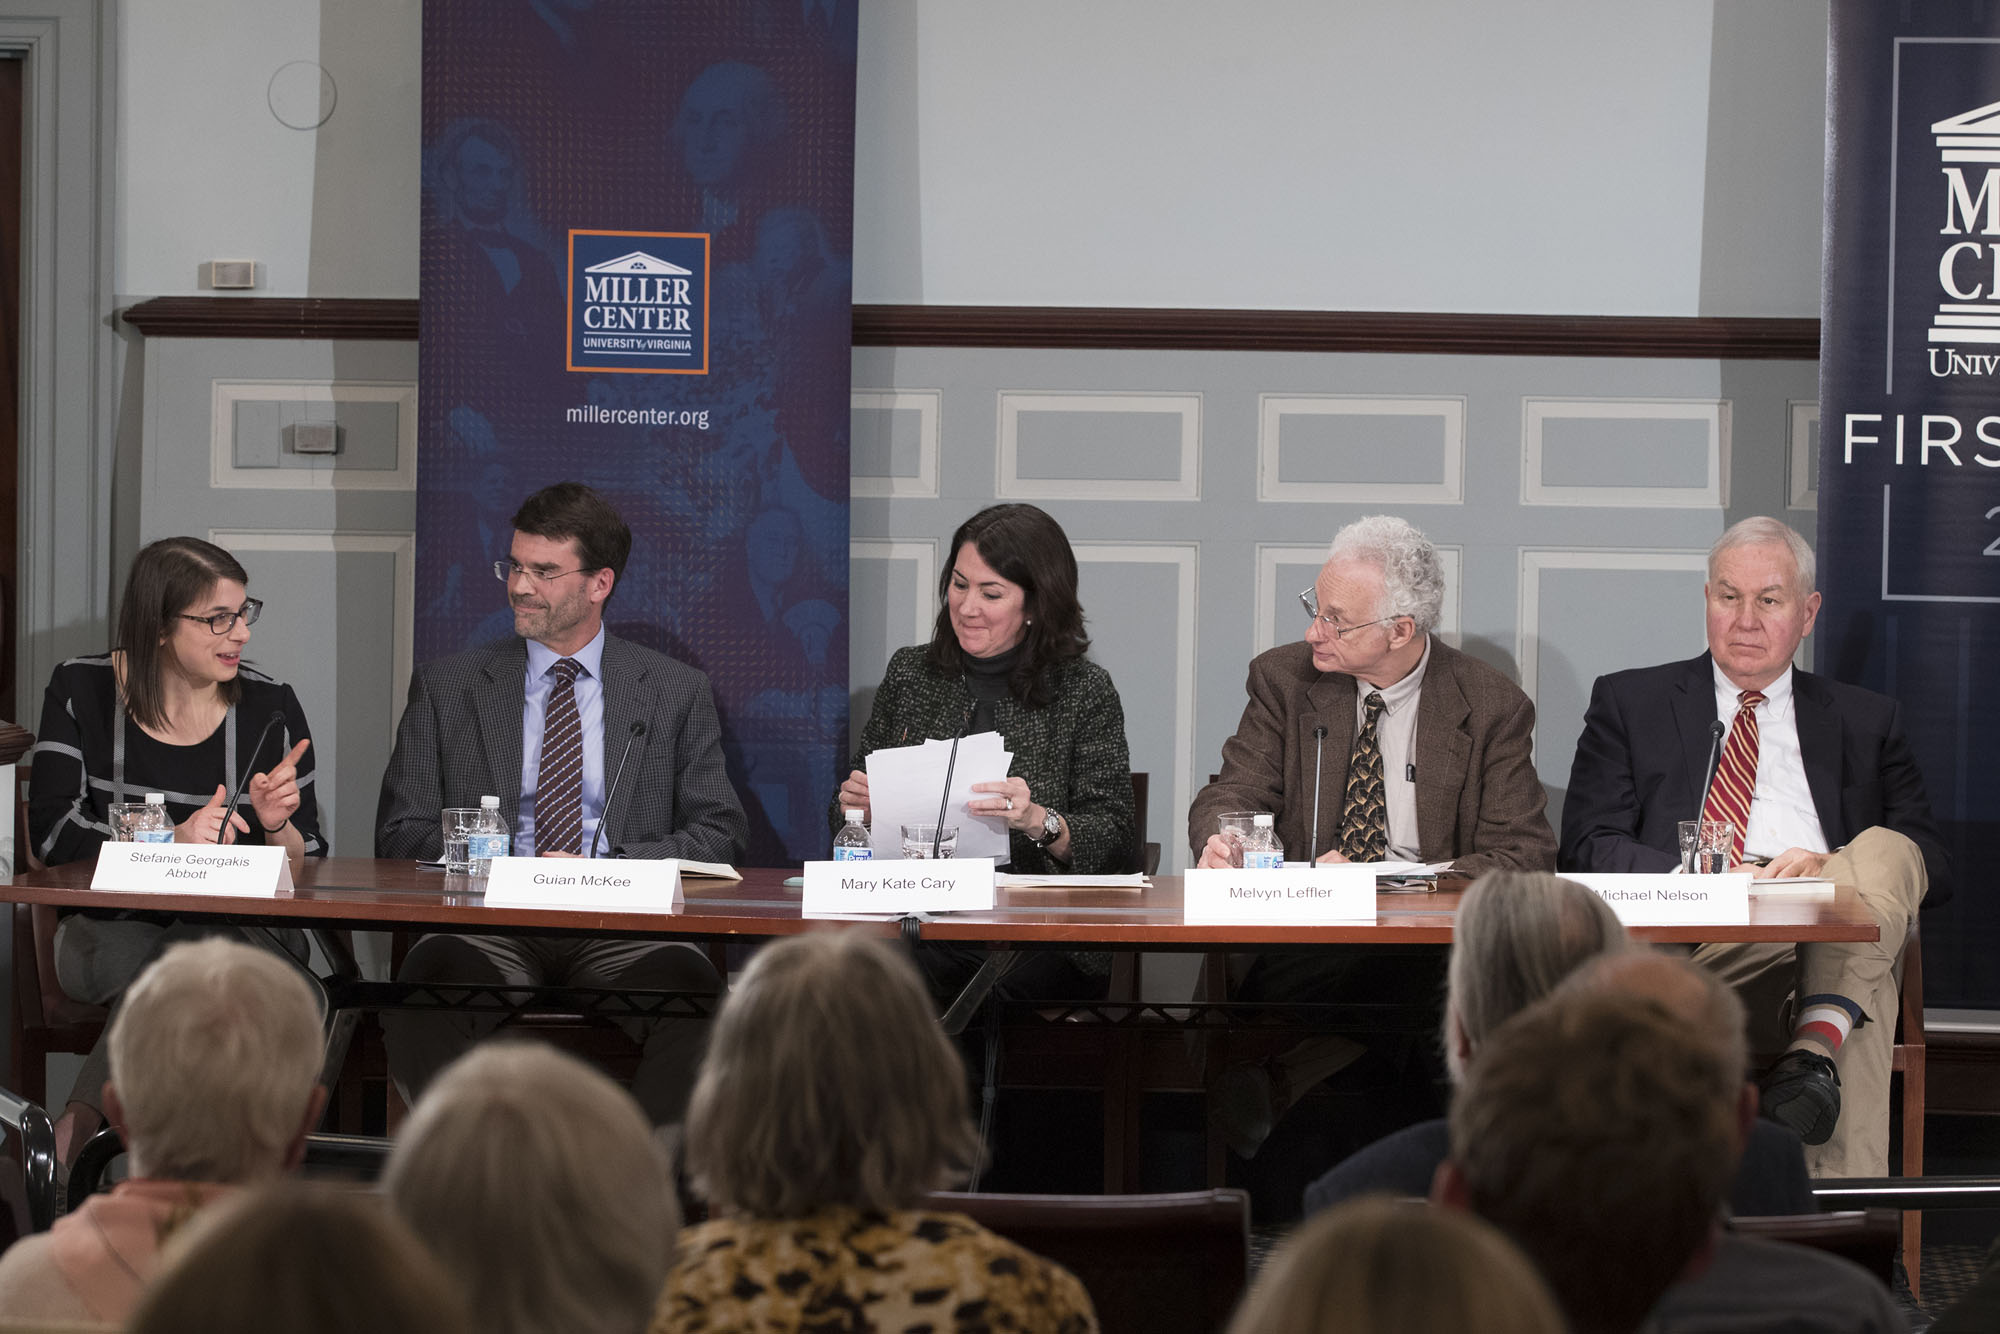 From left to right, moderator Stefanie Georgakis Abbott and panelists Guian McKee, Mary Kate Cary, Melvyn Leffler and Michael Nelson. (Photo by Dan Addison, University Communications)